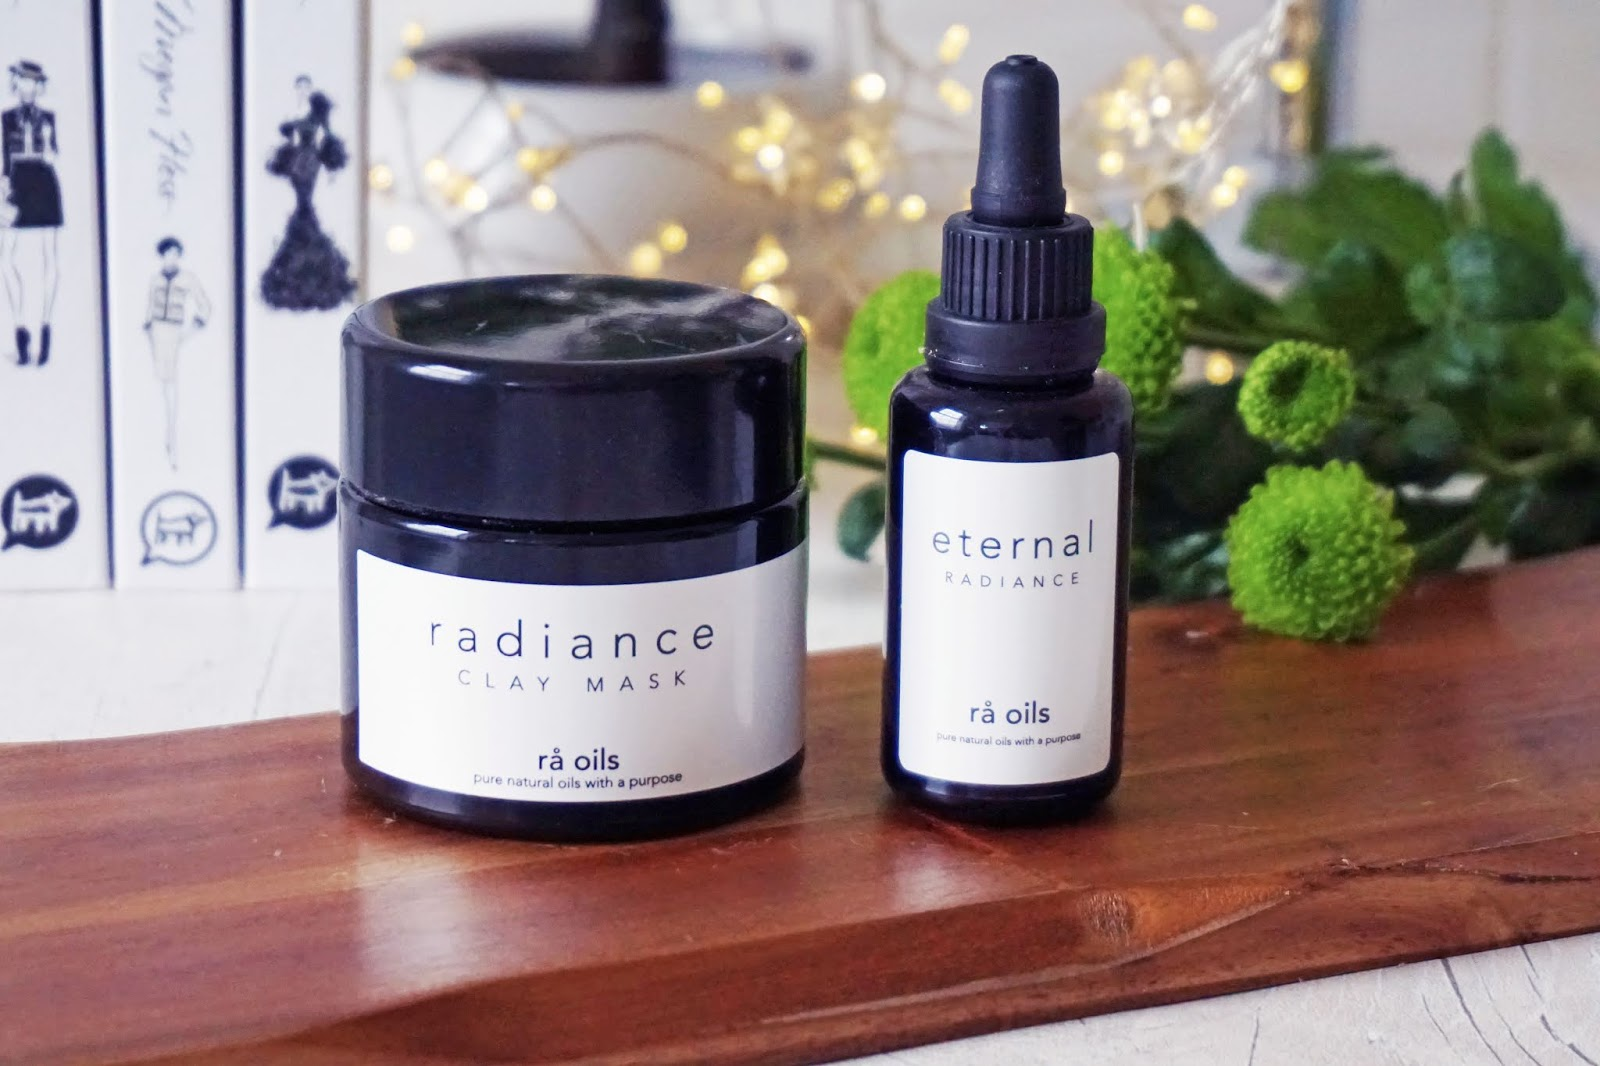 Ra Oils Radiance Clay Mask, Ra Oils Eternal Radiance